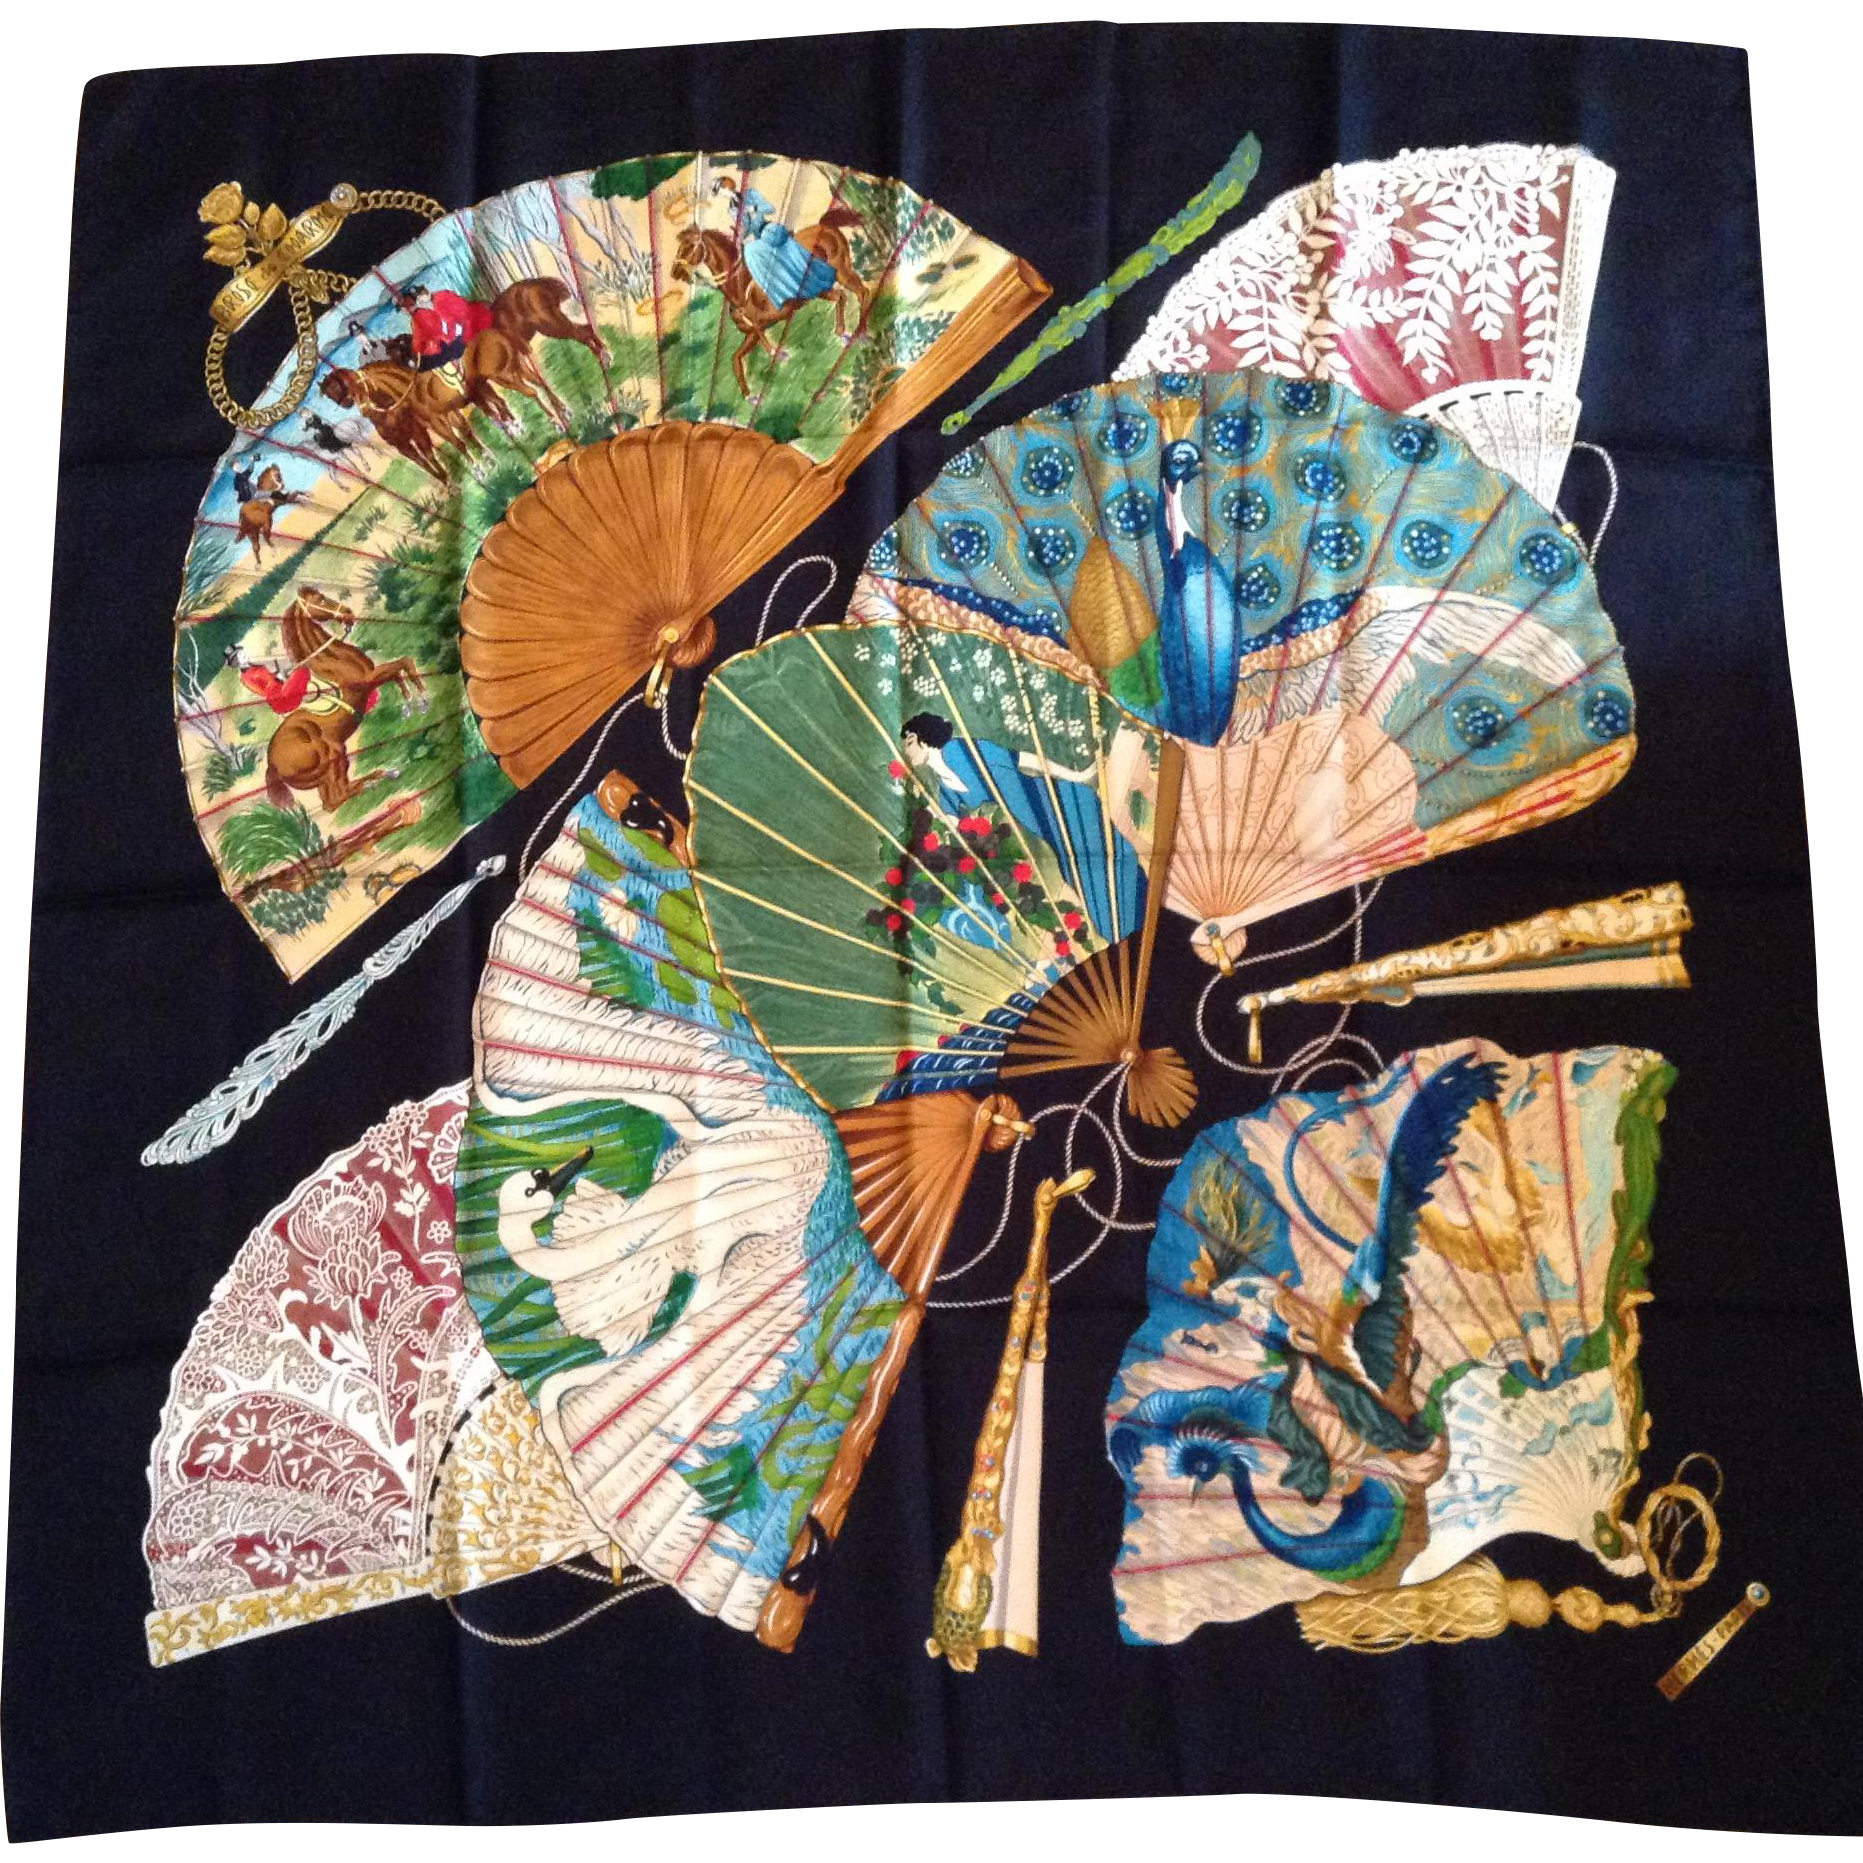 "Vintage Hermes Silk Scarf - ""Brise de Charme"" - Charming Breeze, 1990 design by Julia Abadie"